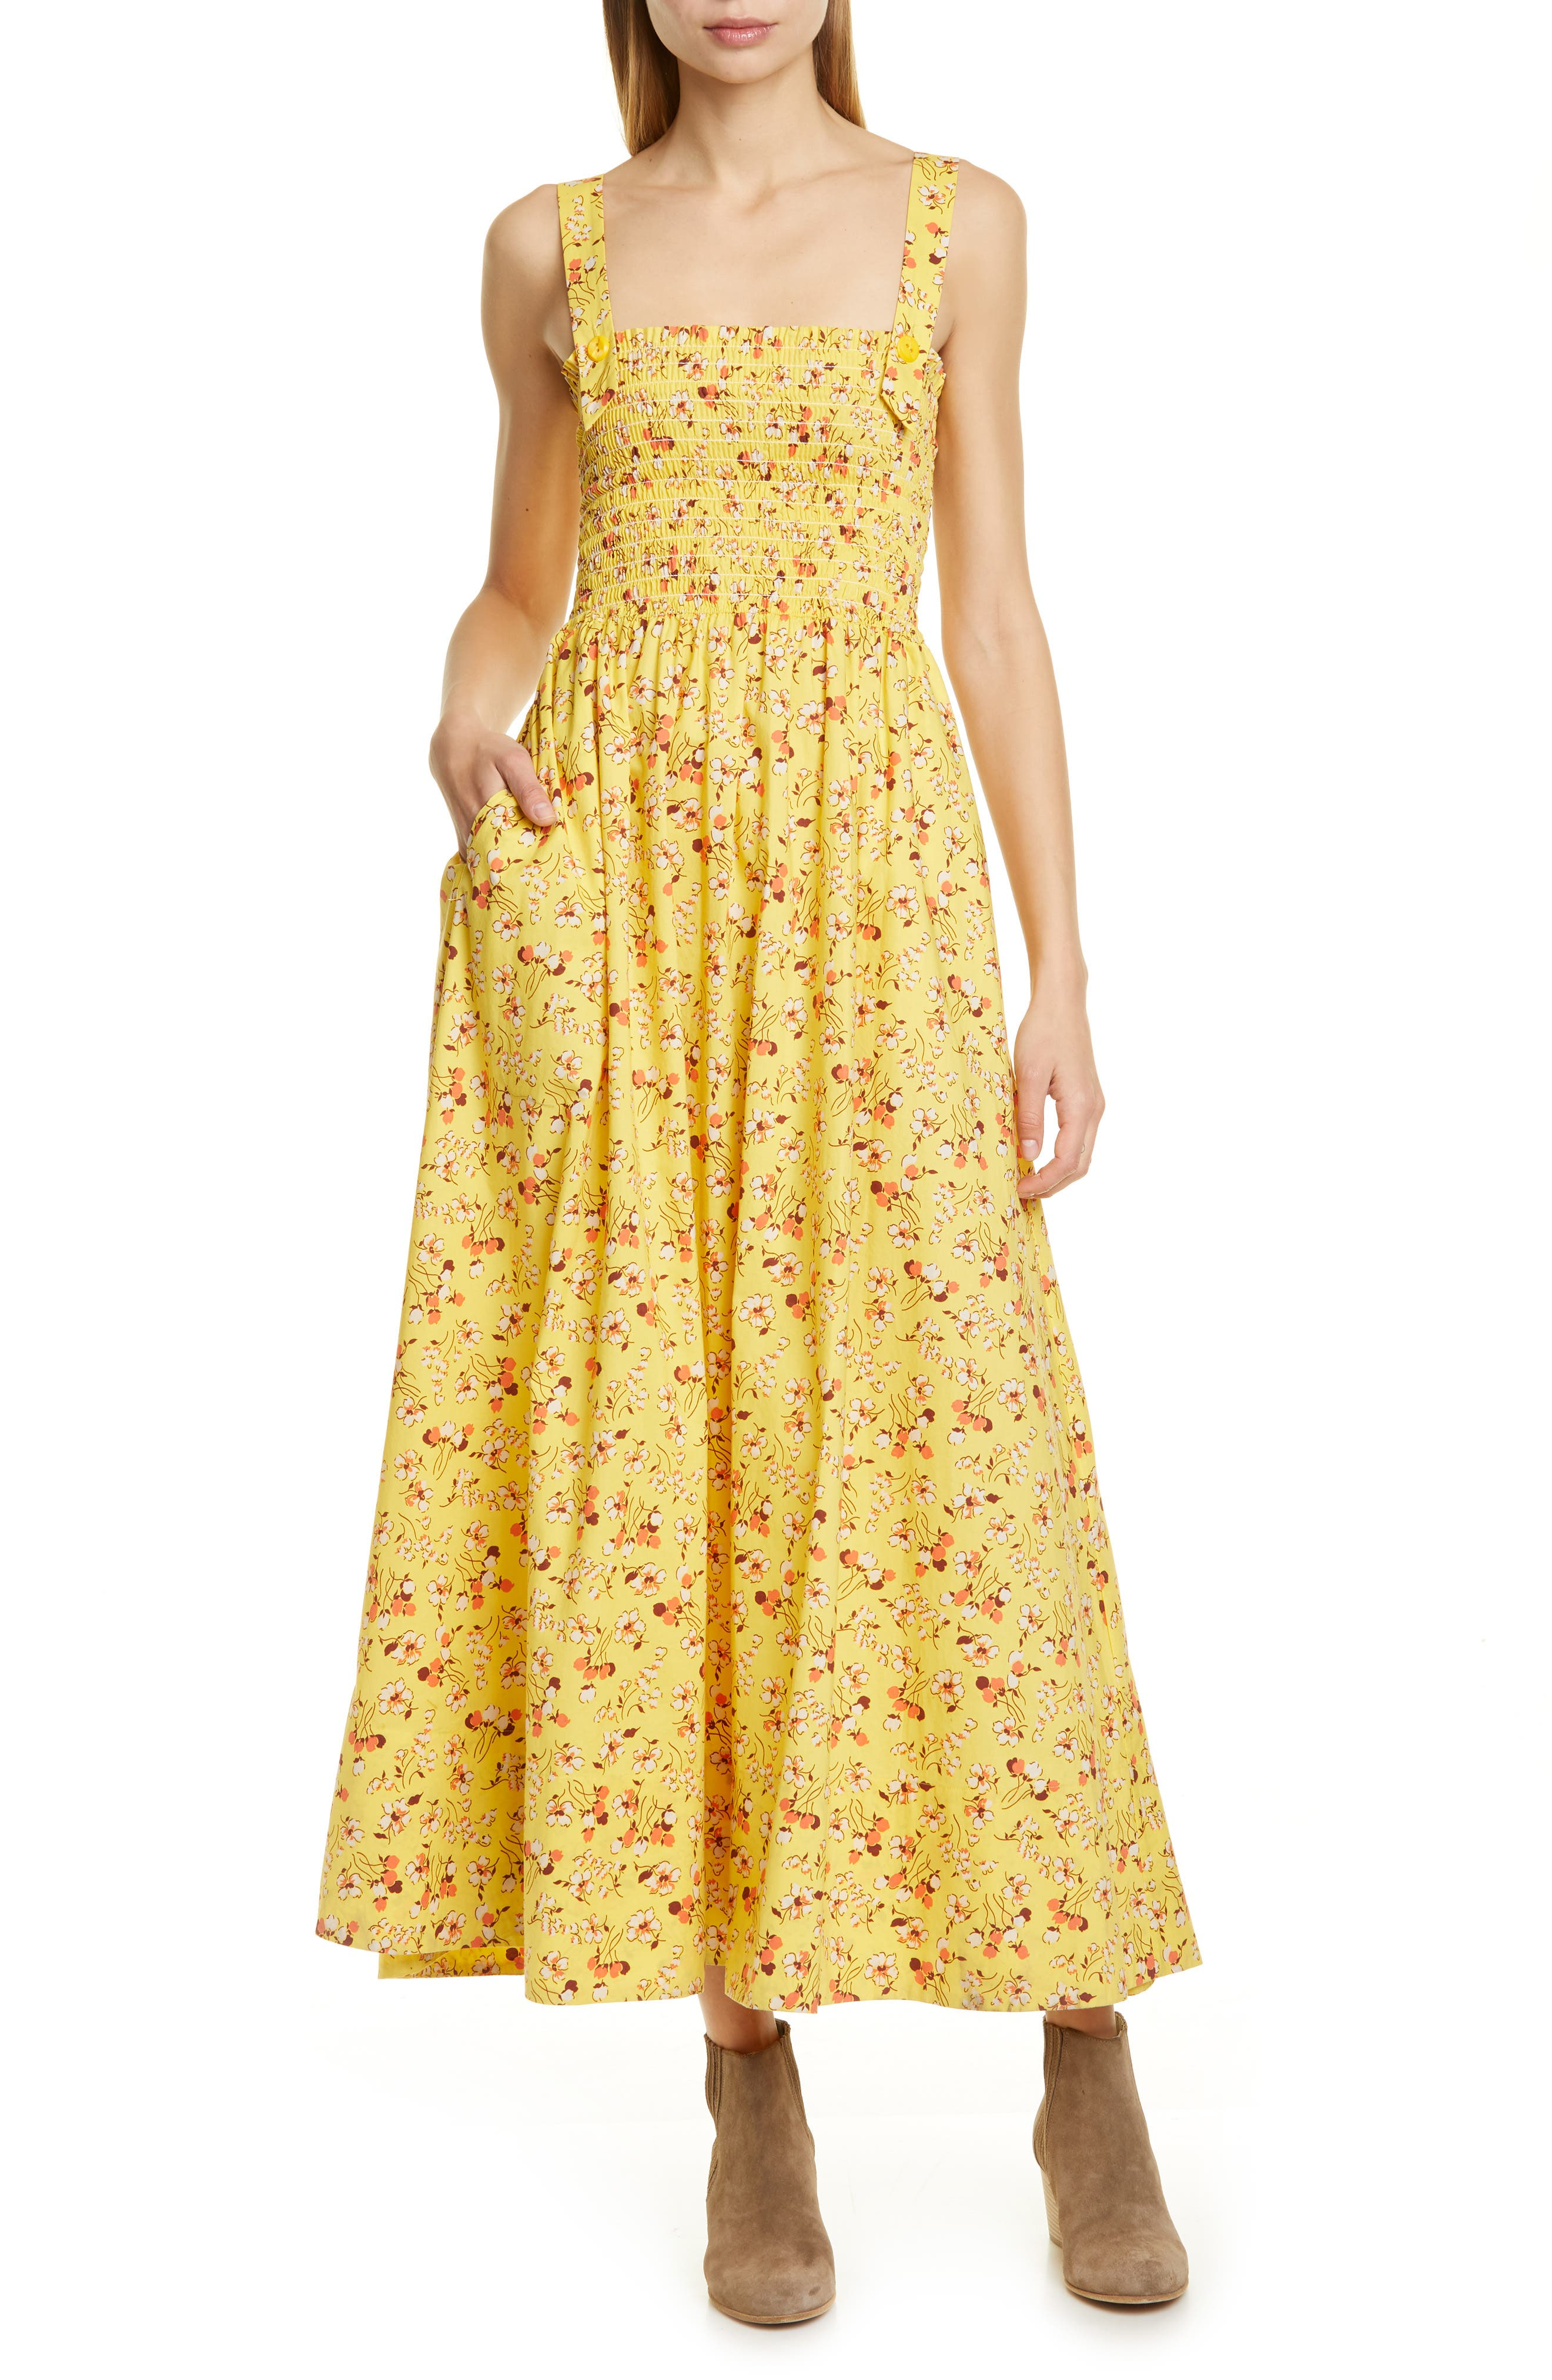 Every Occasion Wear To Polo Ralph WhereLooks Lauren For Women xBQtsCohrd